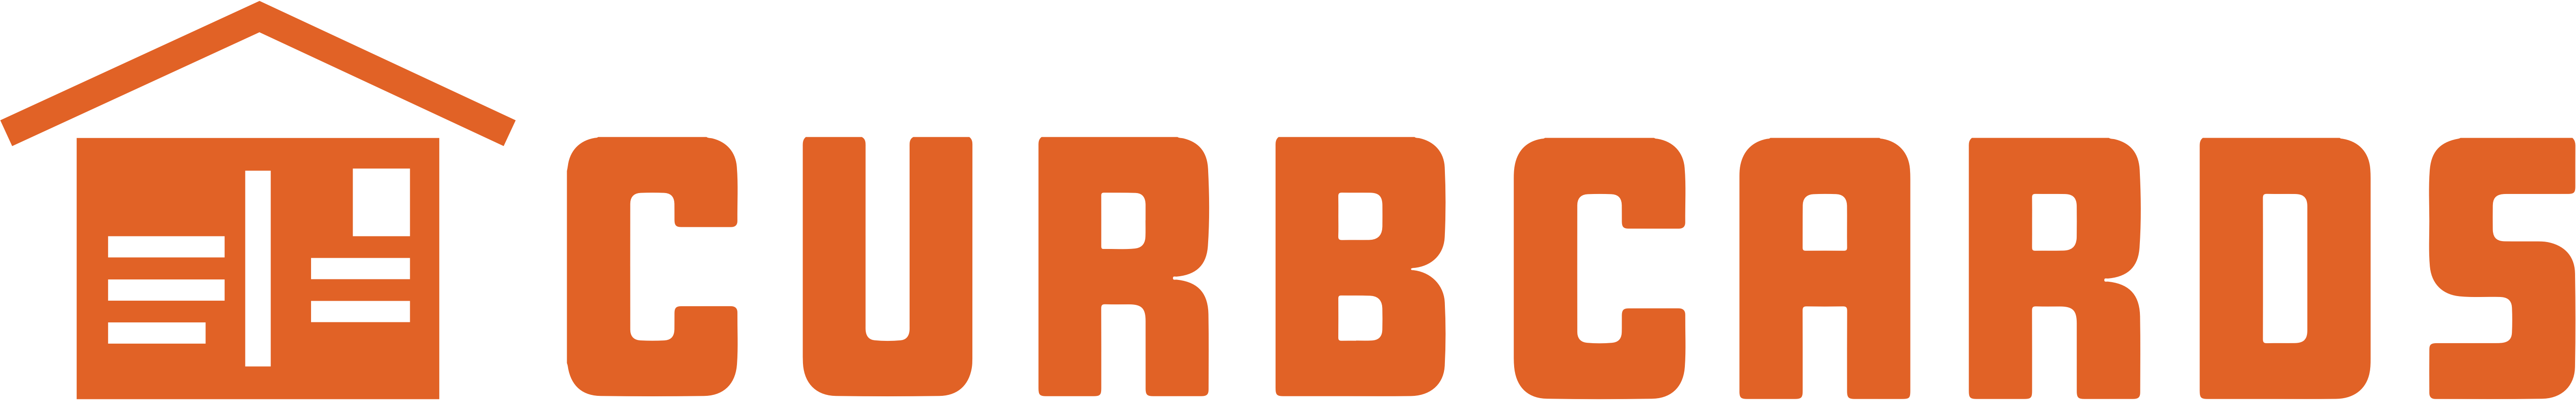 curbcards-logo